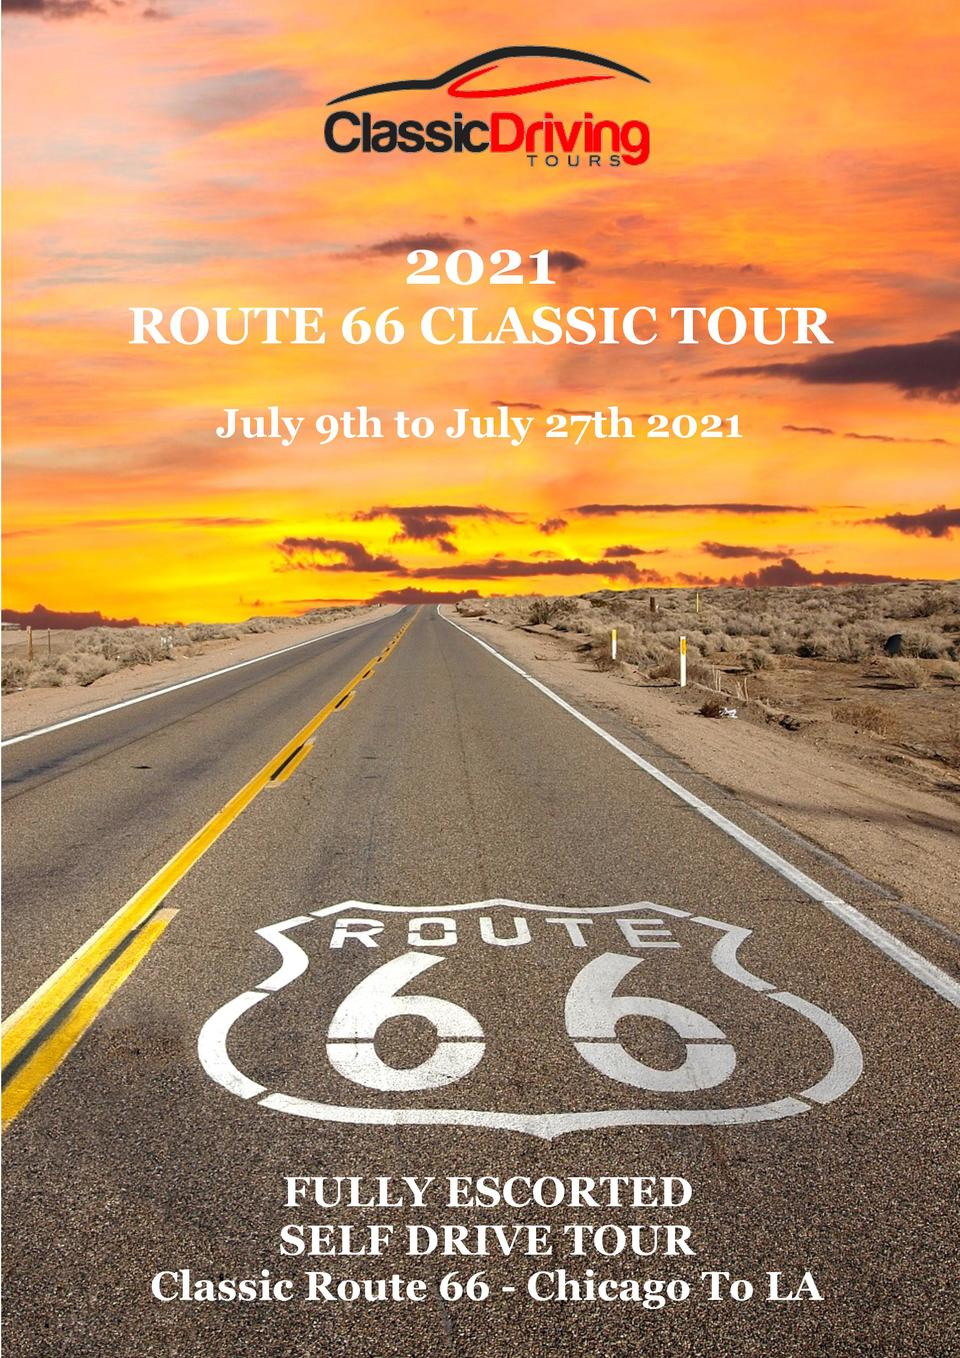 2021  ROUTE 66 CLASSIC TOUR July 9th to July 27th 2021  FULLY ESCORTED SELF DRIVE TOUR Classic Route 66 - Chicago To LA